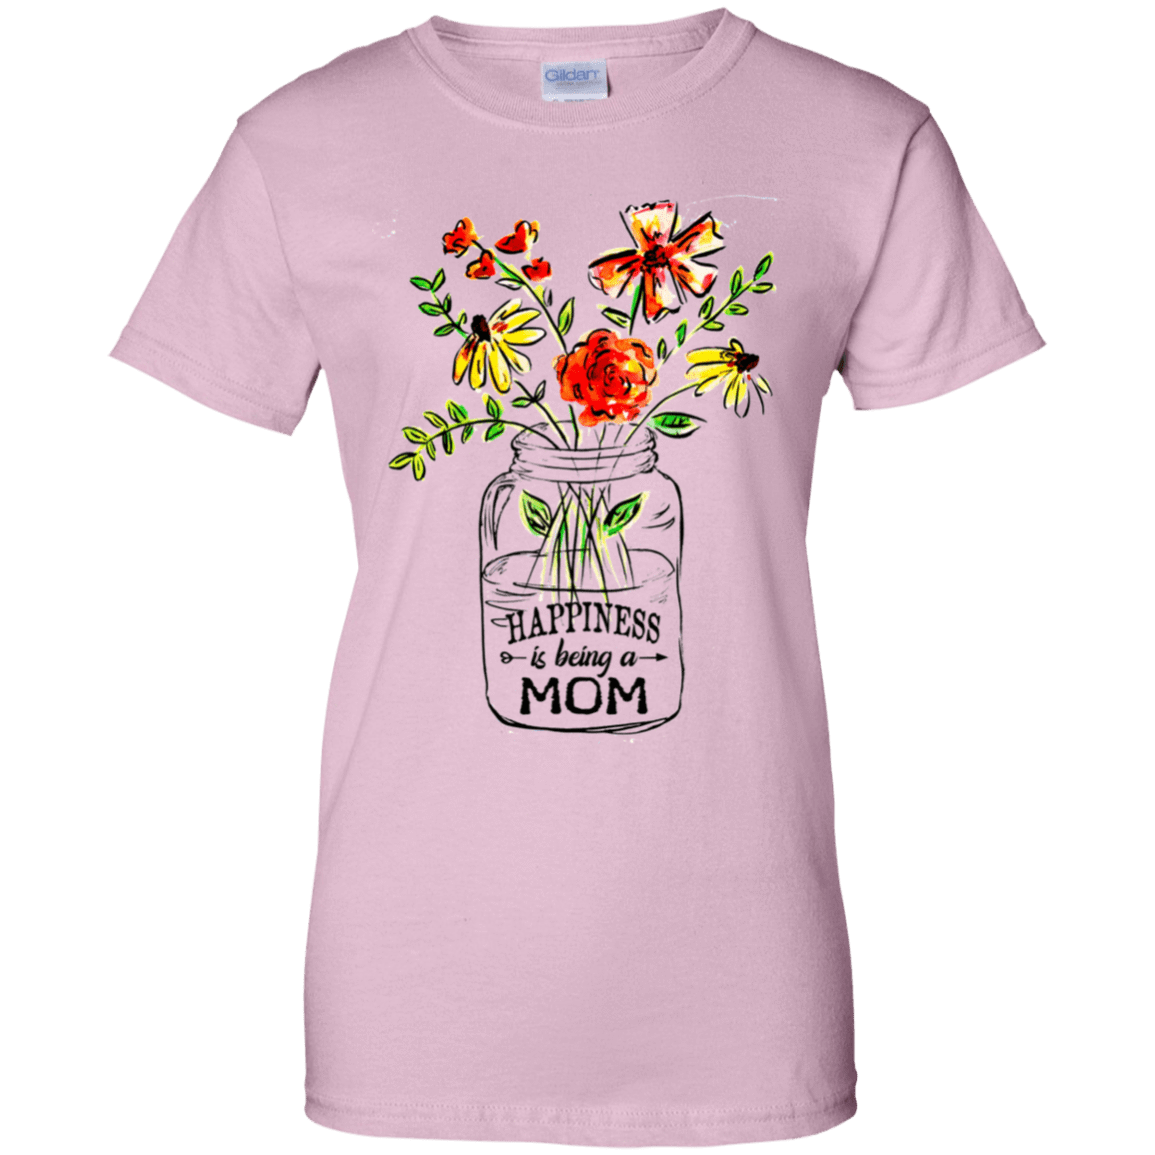 Happiness Is Being A Mom Flower 939-9258-74371513-44786 - Tee Ript